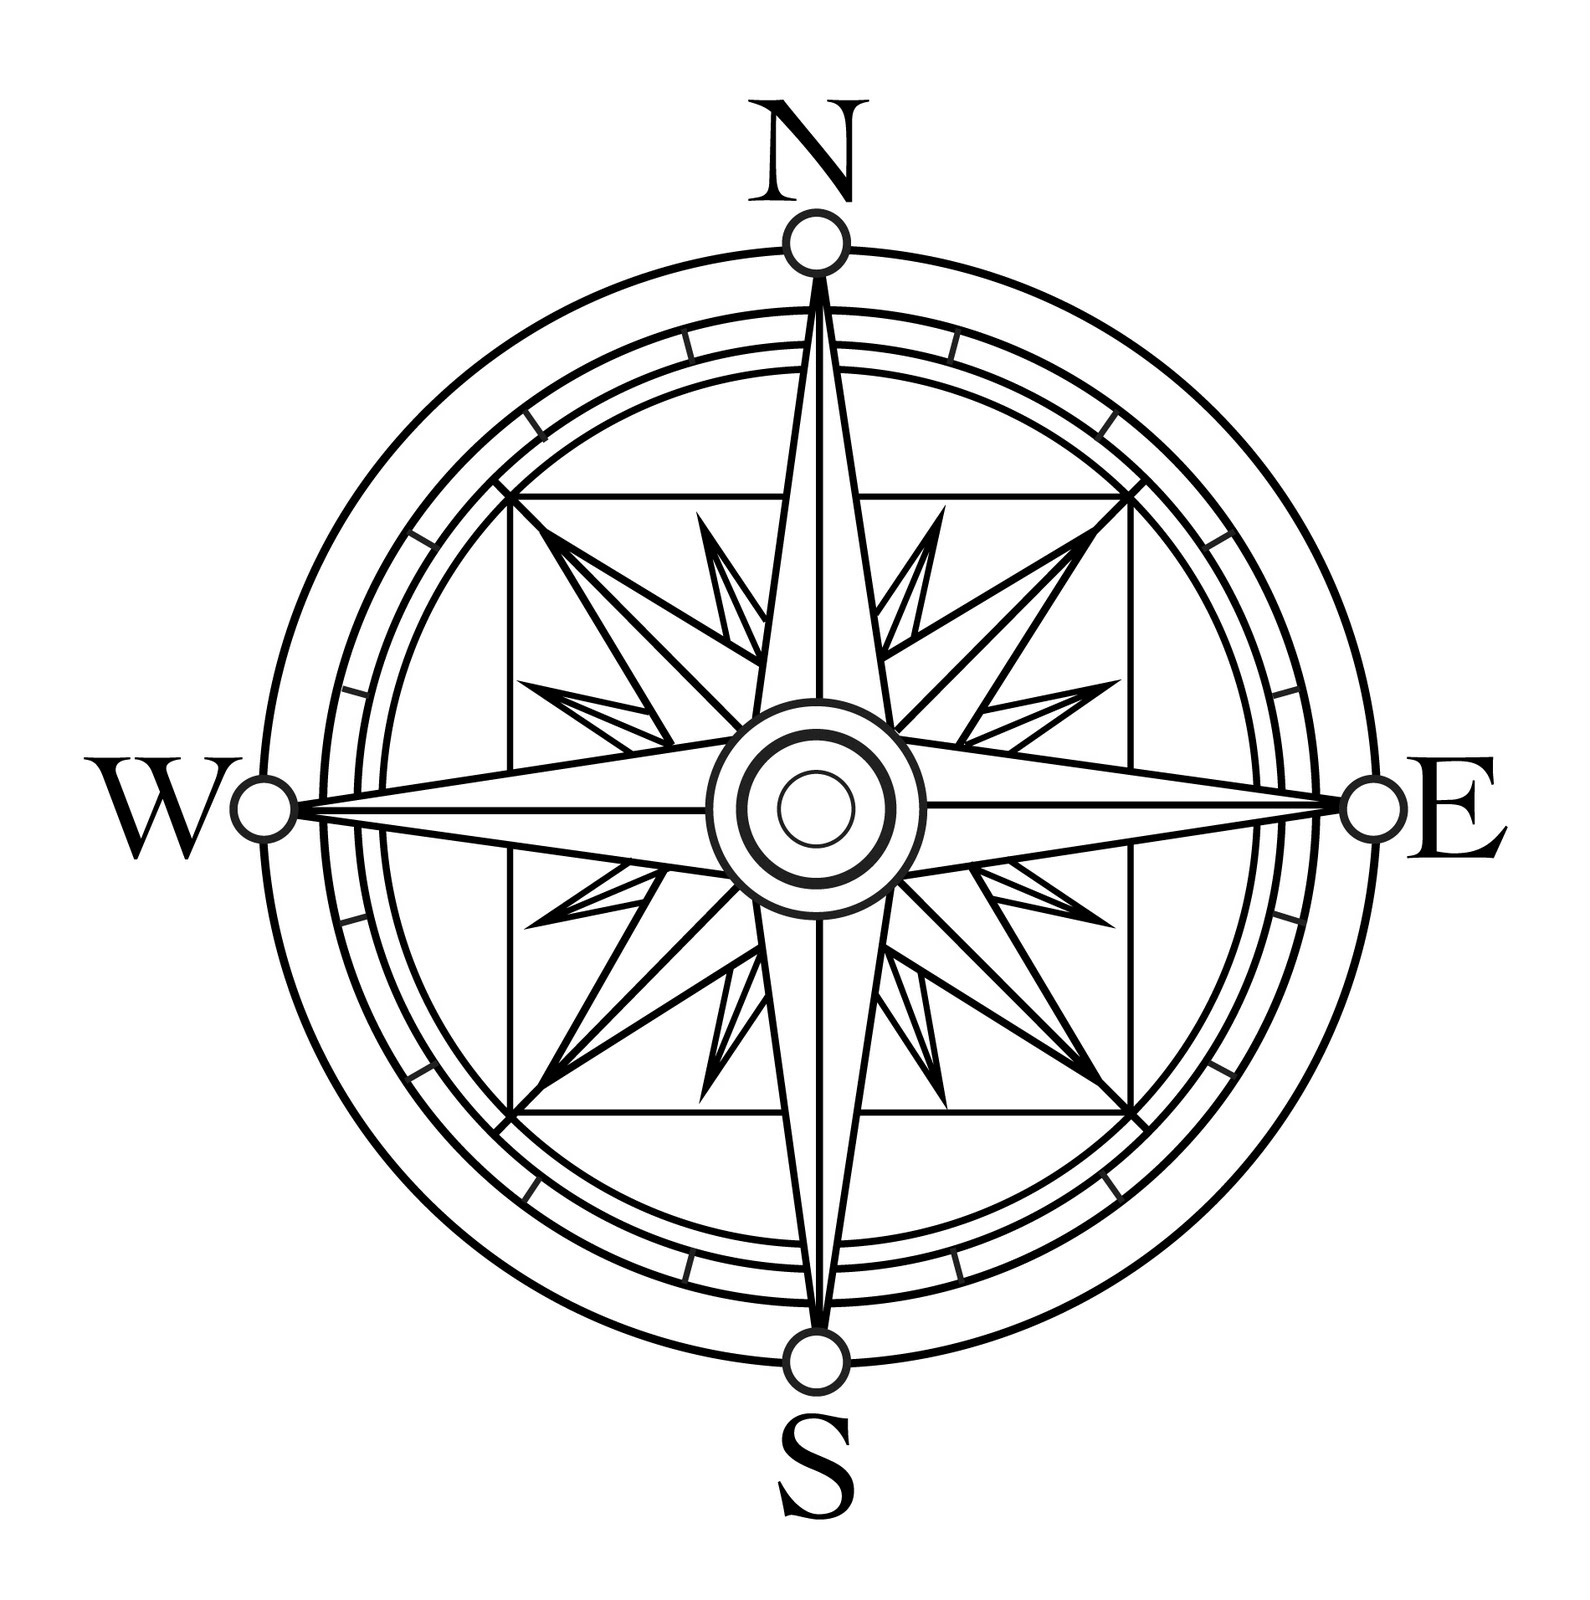 picture about Picture of a Compass Rose Printable titled Printable Comp Rose Clipart Free of charge down load most straightforward